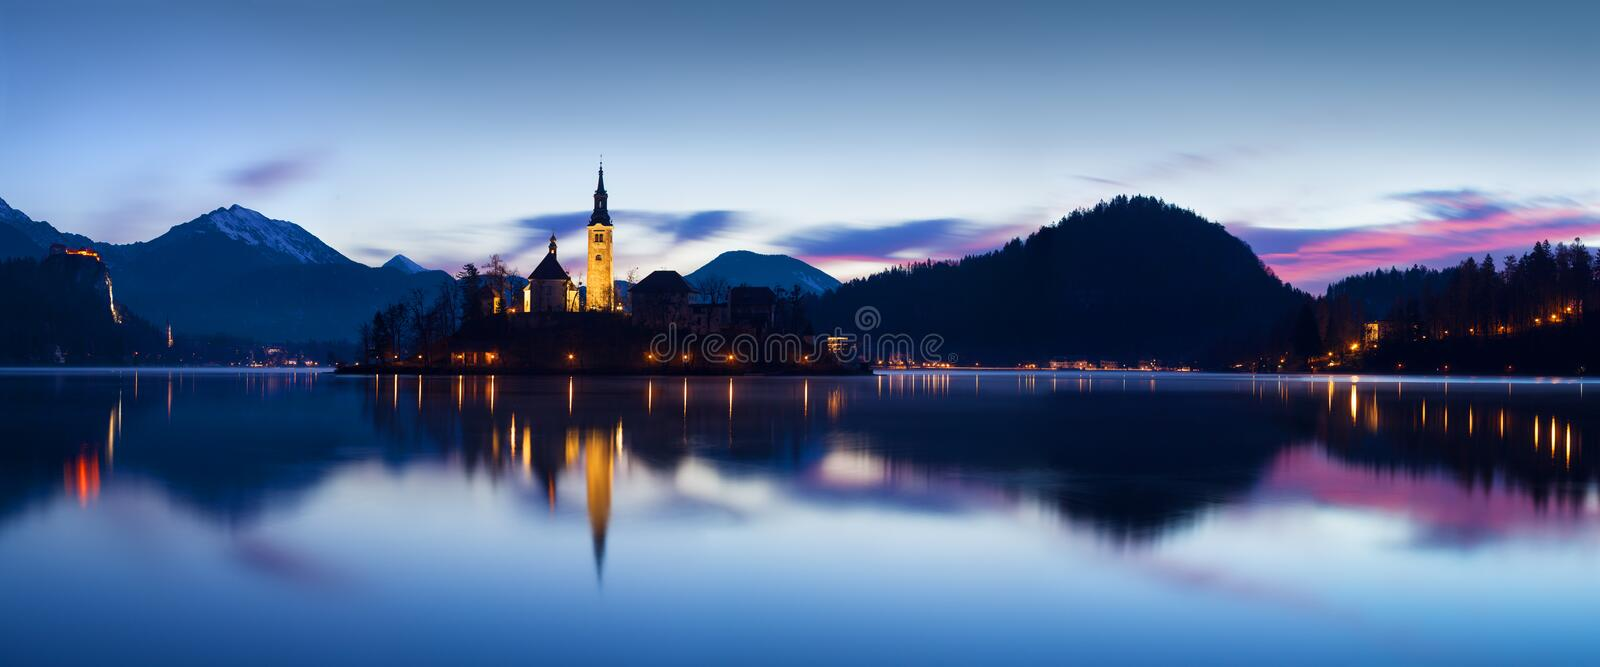 Beautiful view of famous Bled Island with Catholic Church at scenic Lake Bled with Bled Castle Blejski grad and Julian Alps. stock photo